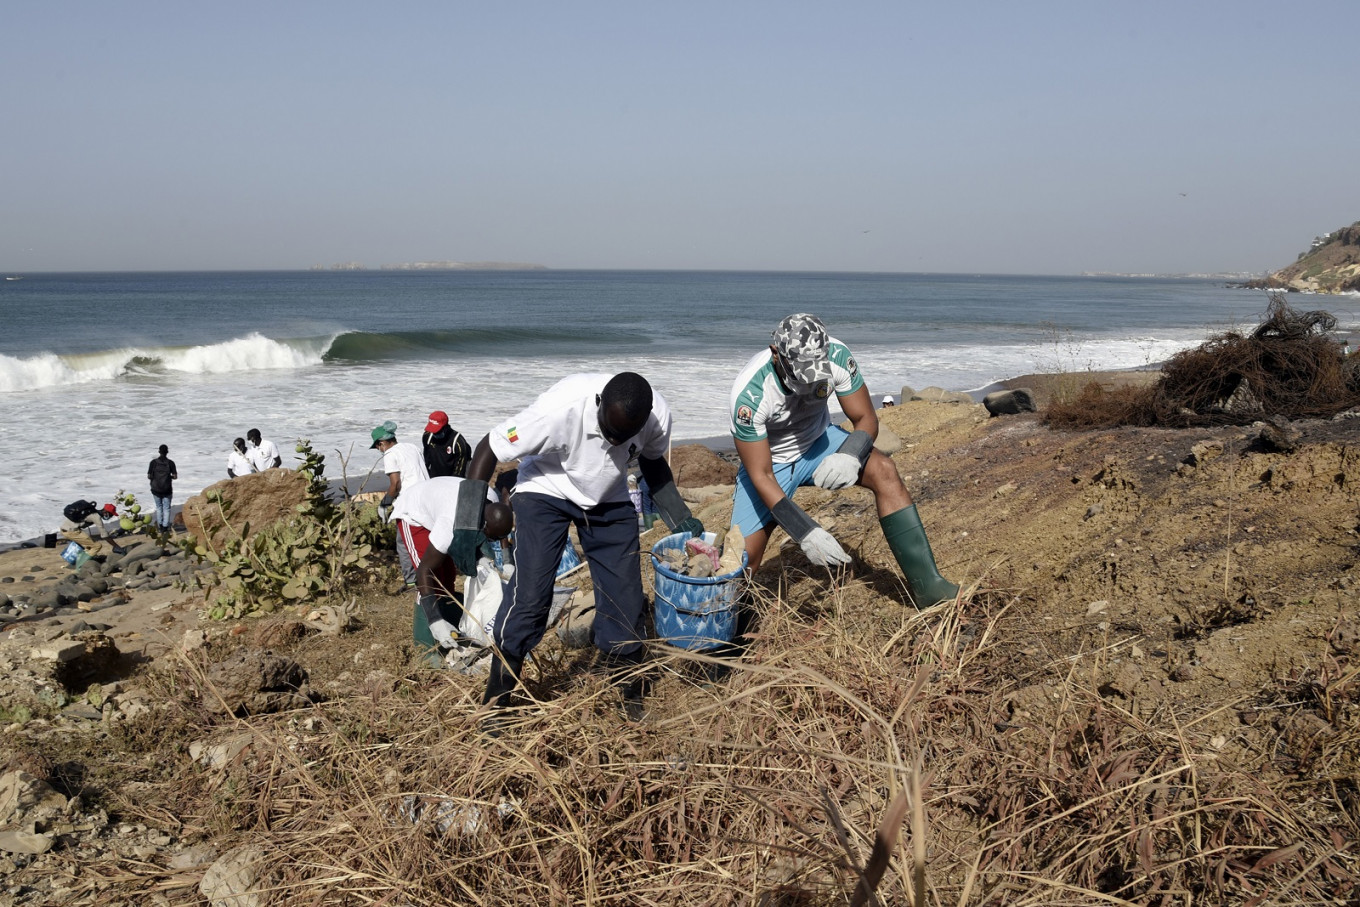 In Dakar, volunteers clean beach littered with medical waste